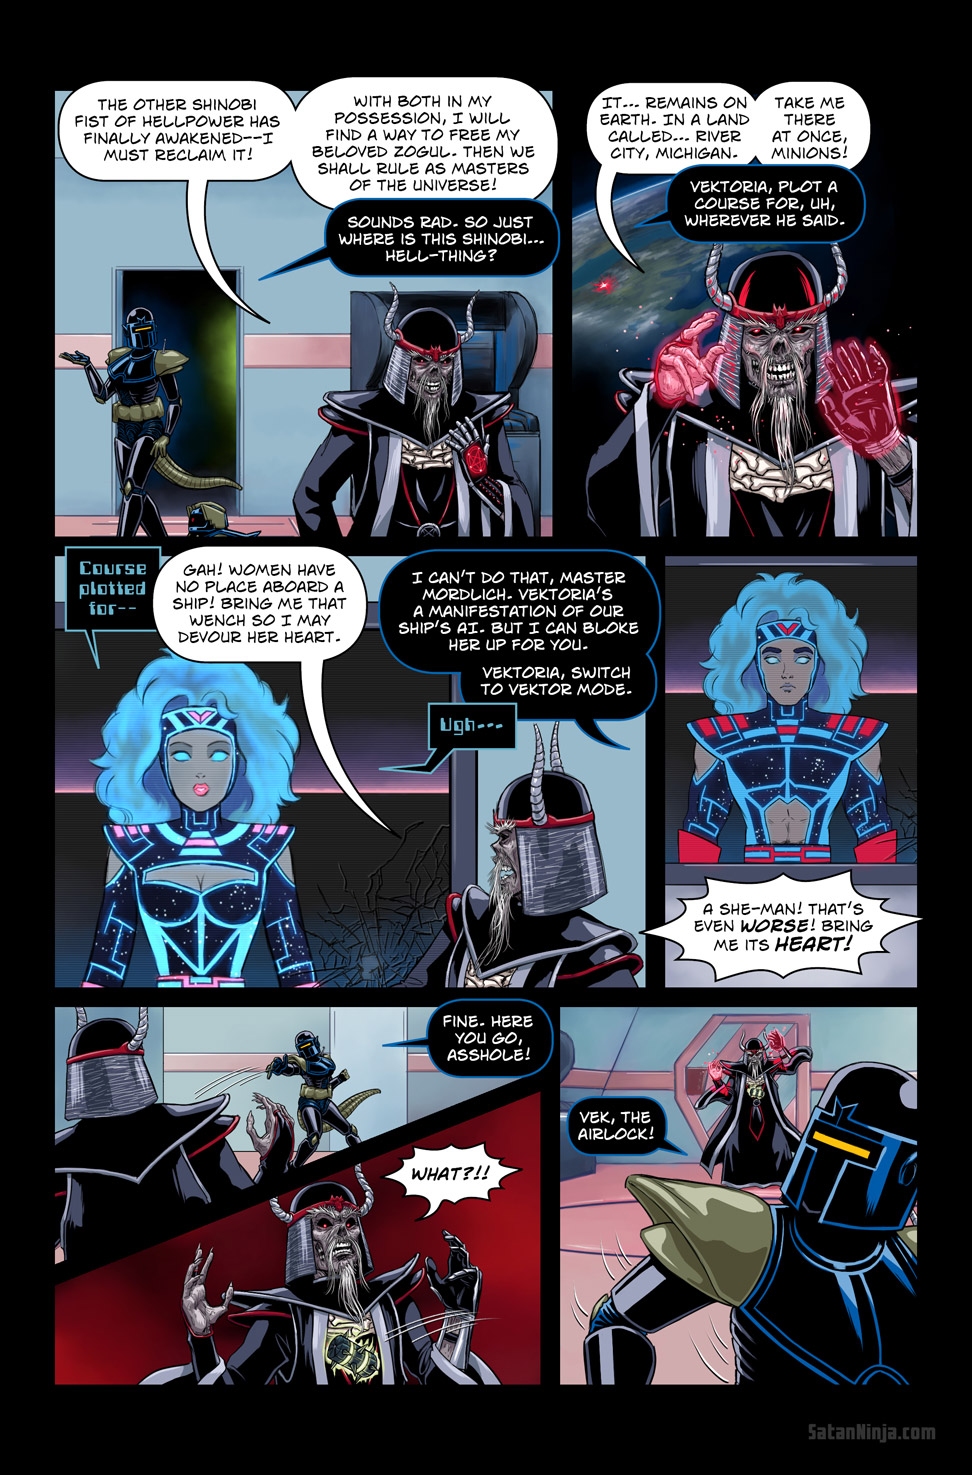 Issue 3, Page 6 - Vektor Mode